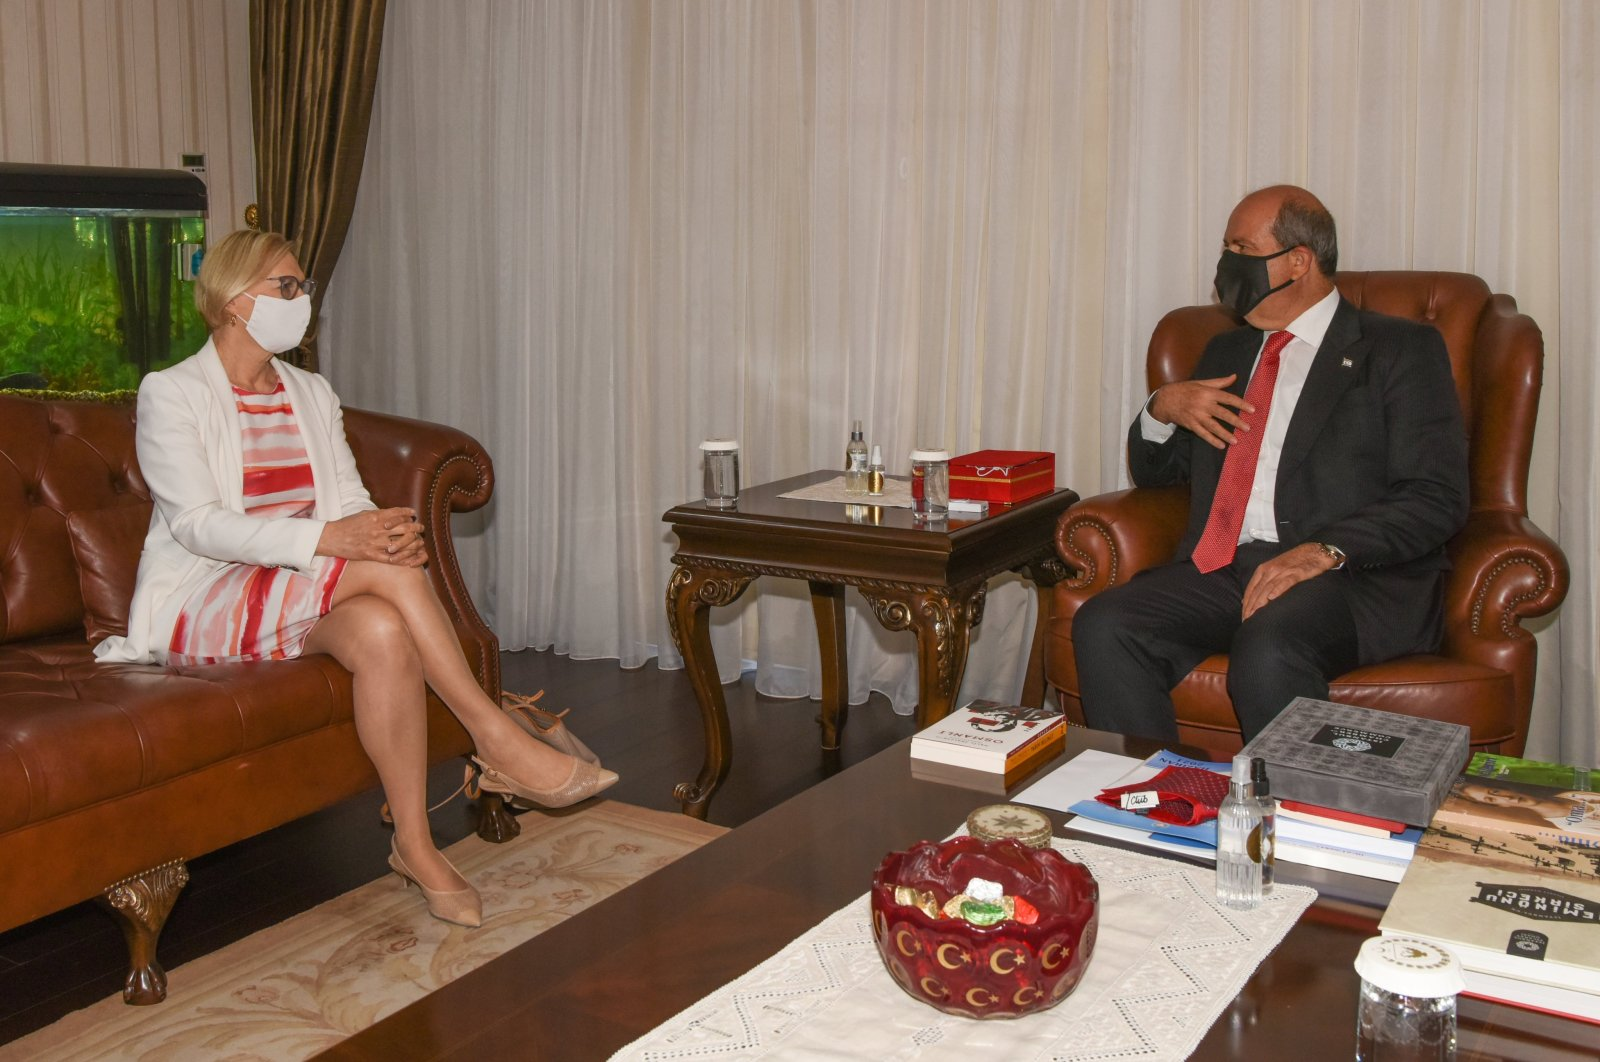 Turkish Cyprus' President Ersin Tatar (R) and Elizabeth Spehar, the outgoing head of the United Nations peacekeeping force on the island of Cyprus, meet in Lefkoşa (Nicosia), TRNC, Sept. 13, 2021. (AA Photo)